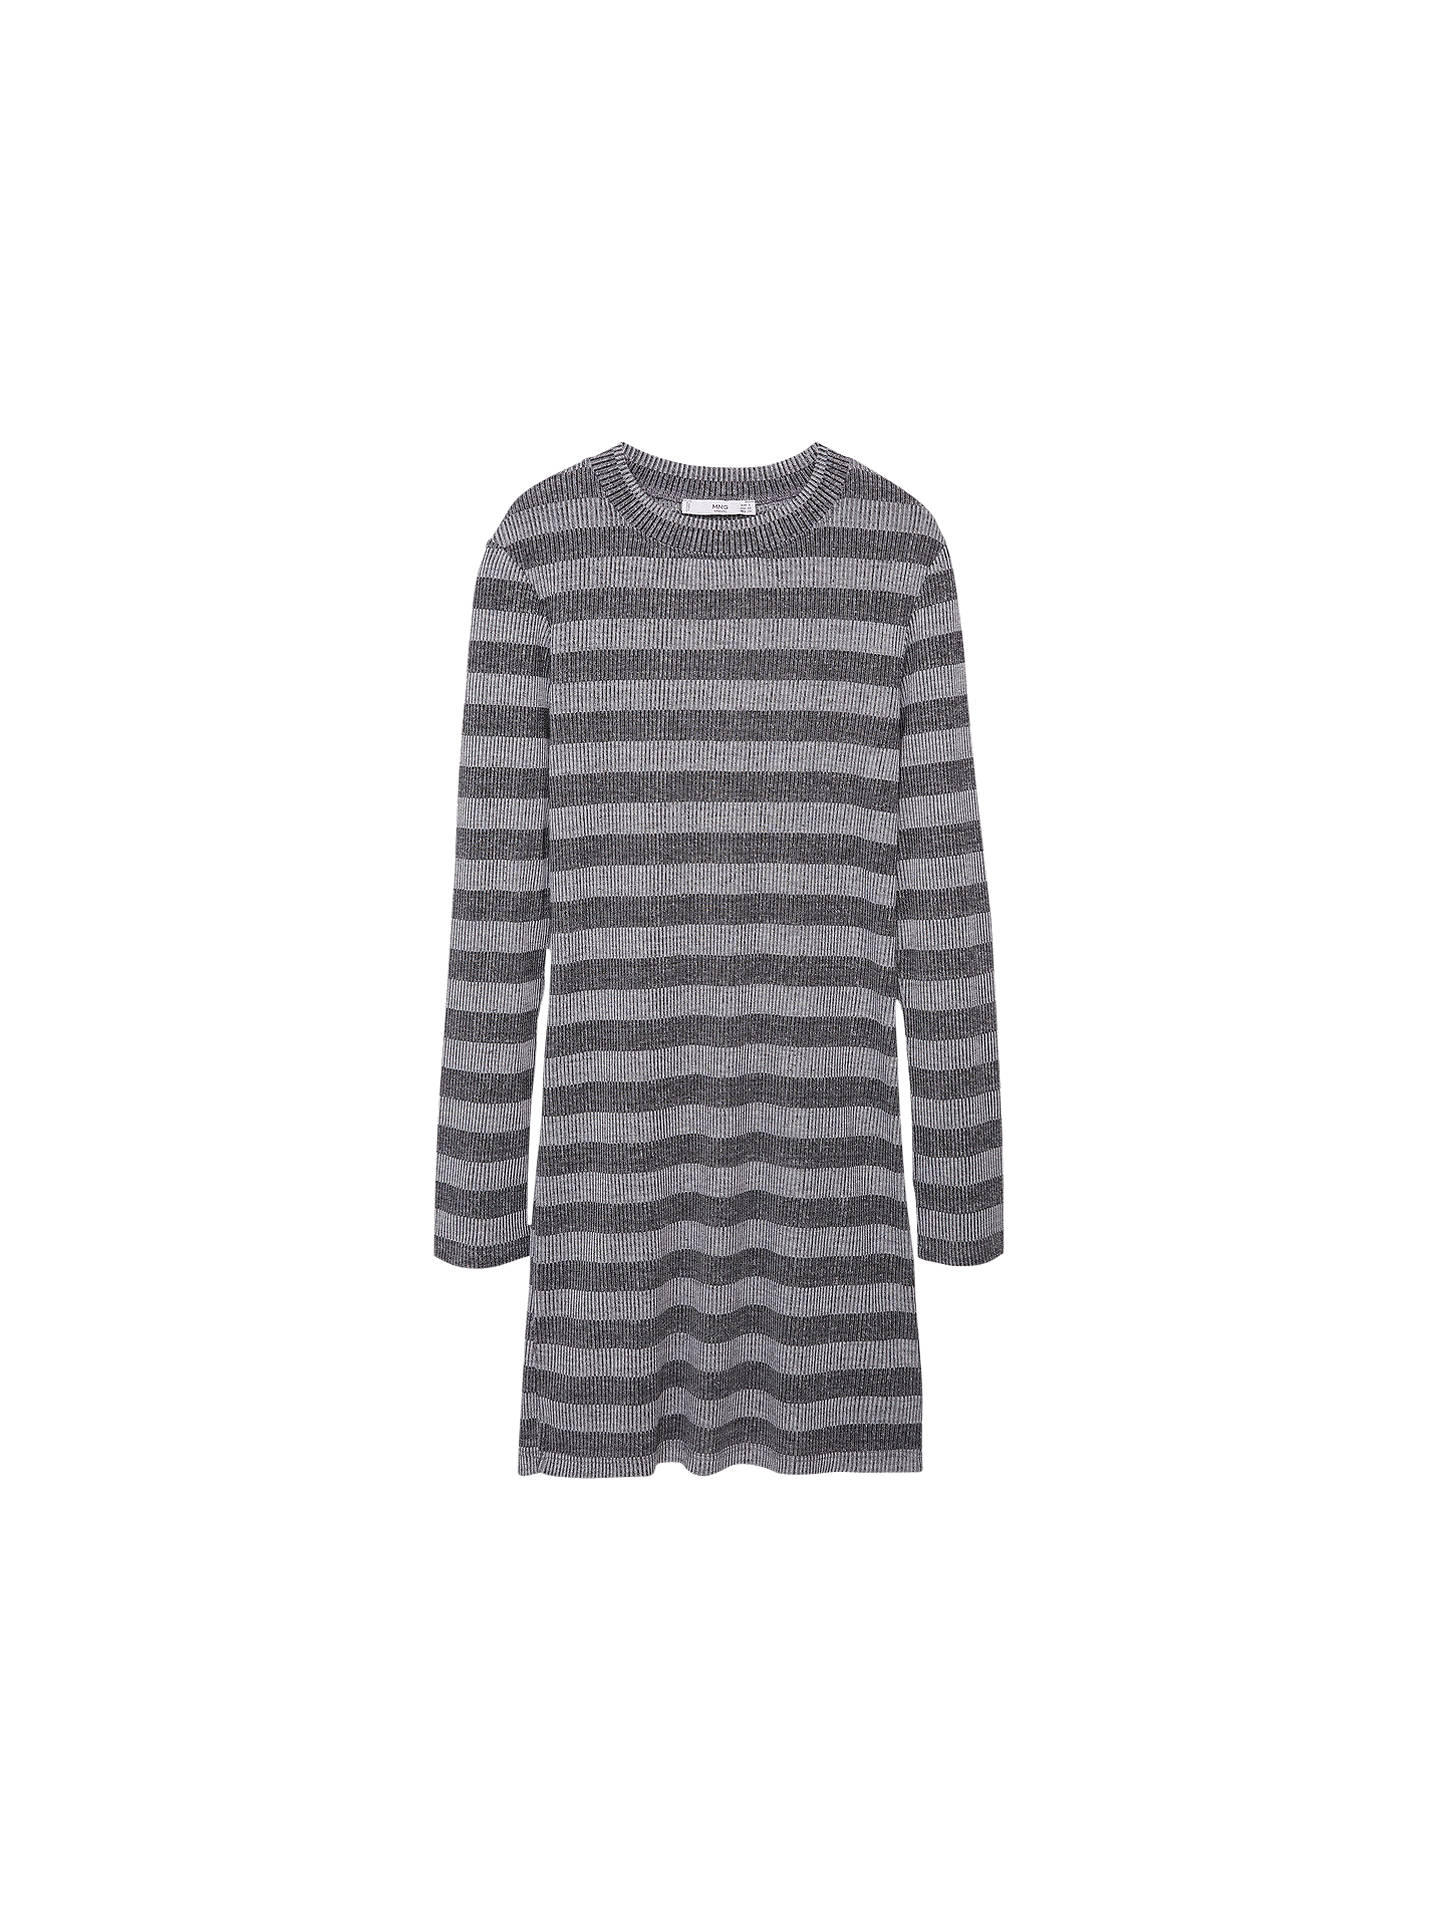 bad082101ad Buy Mango Ribbed Jersey Dress